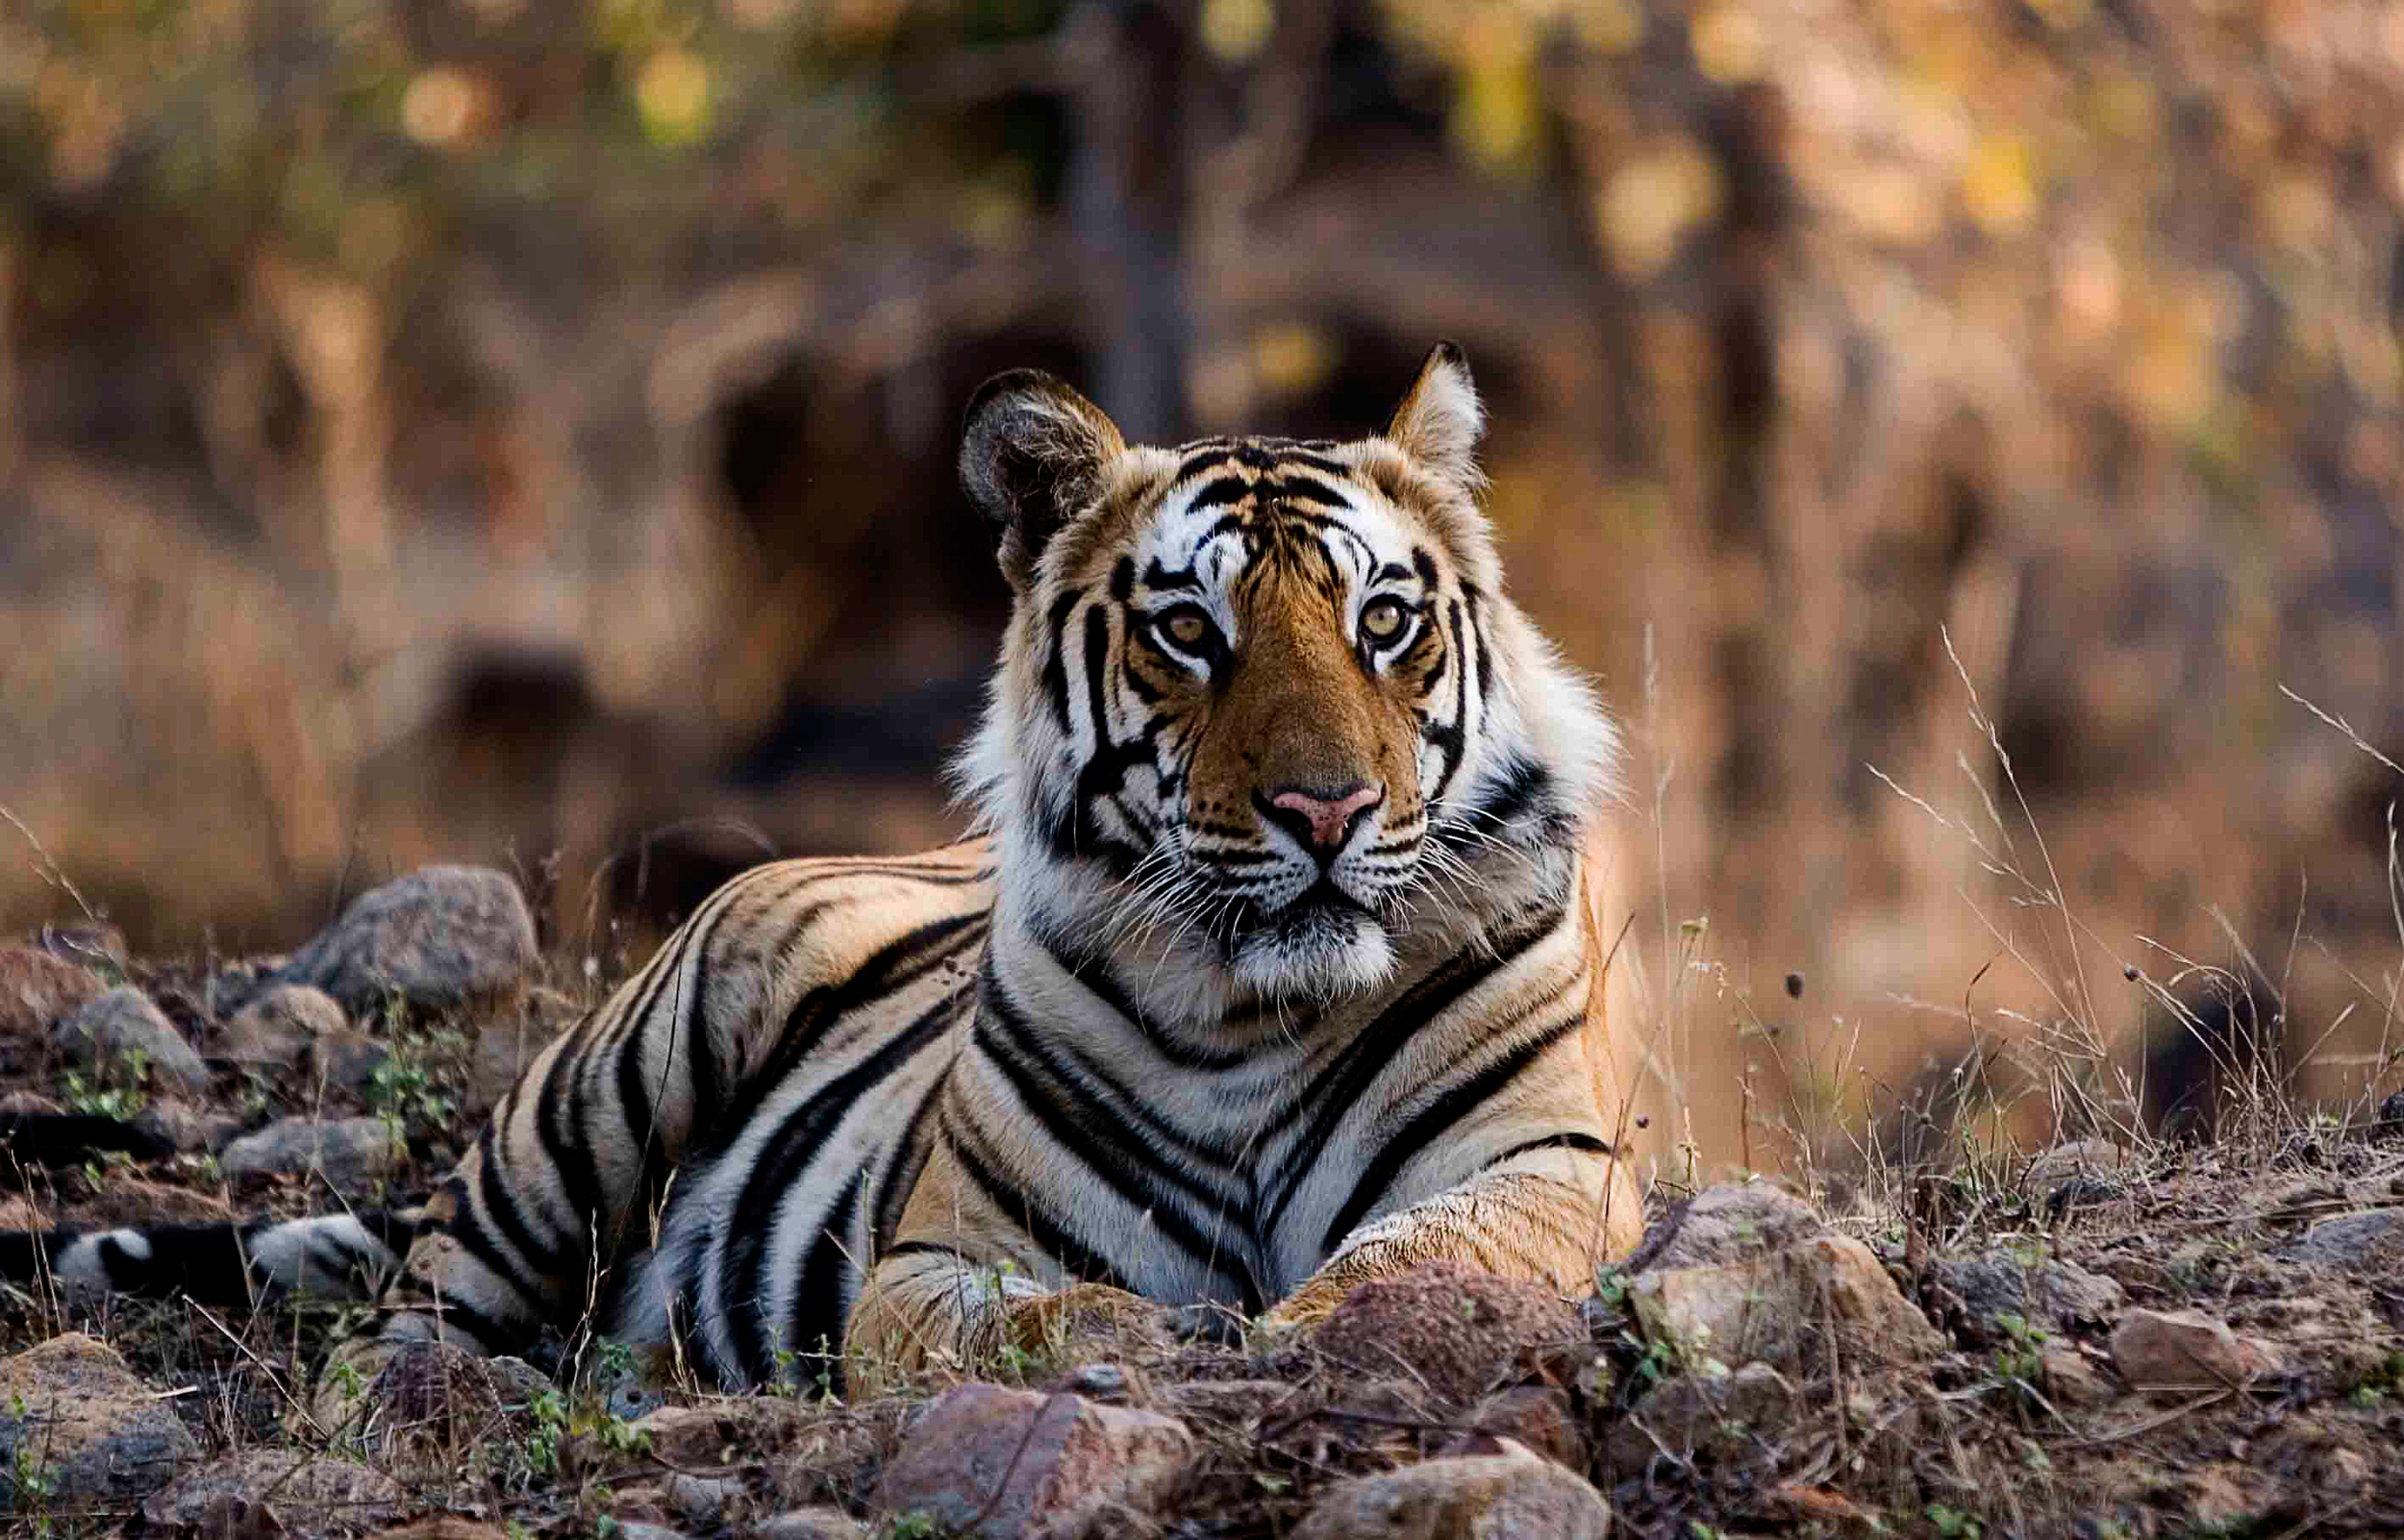 Tiger-Male-morning-Bandhavgarh-2007.jpg